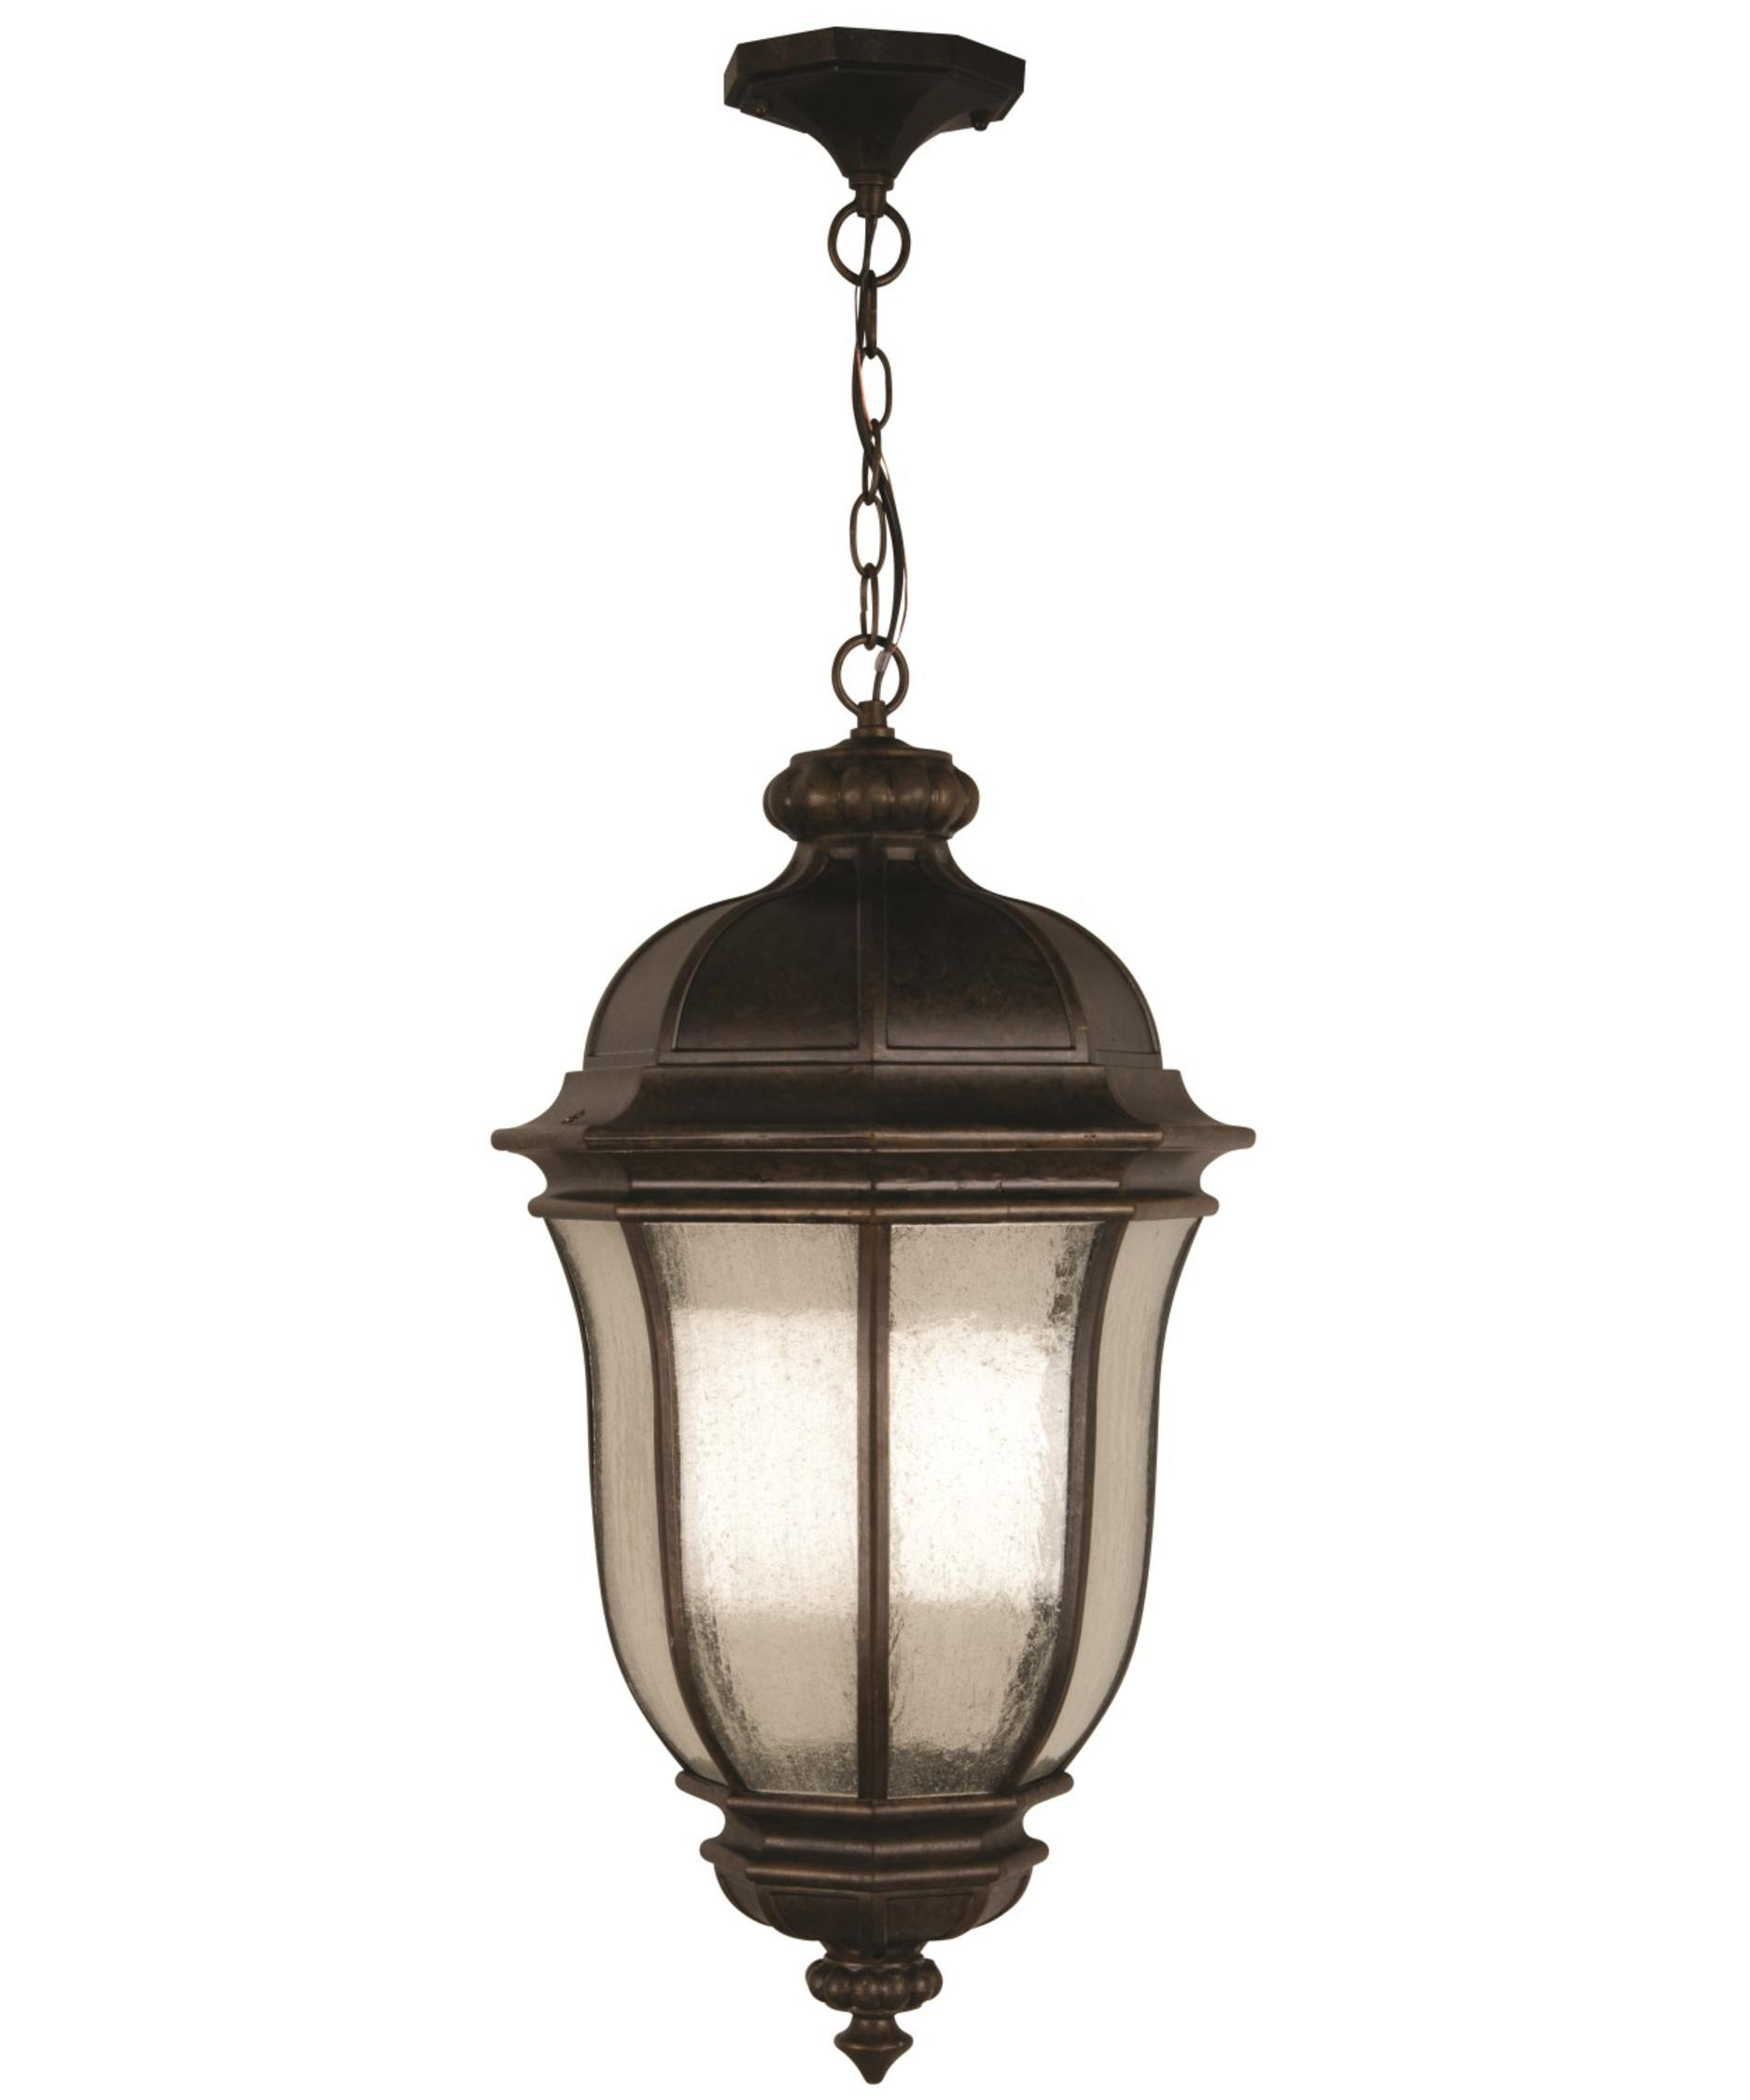 Outdoor hanging lamp - Shown In Peruvian Bronze Finish And Clear Seeded Glass